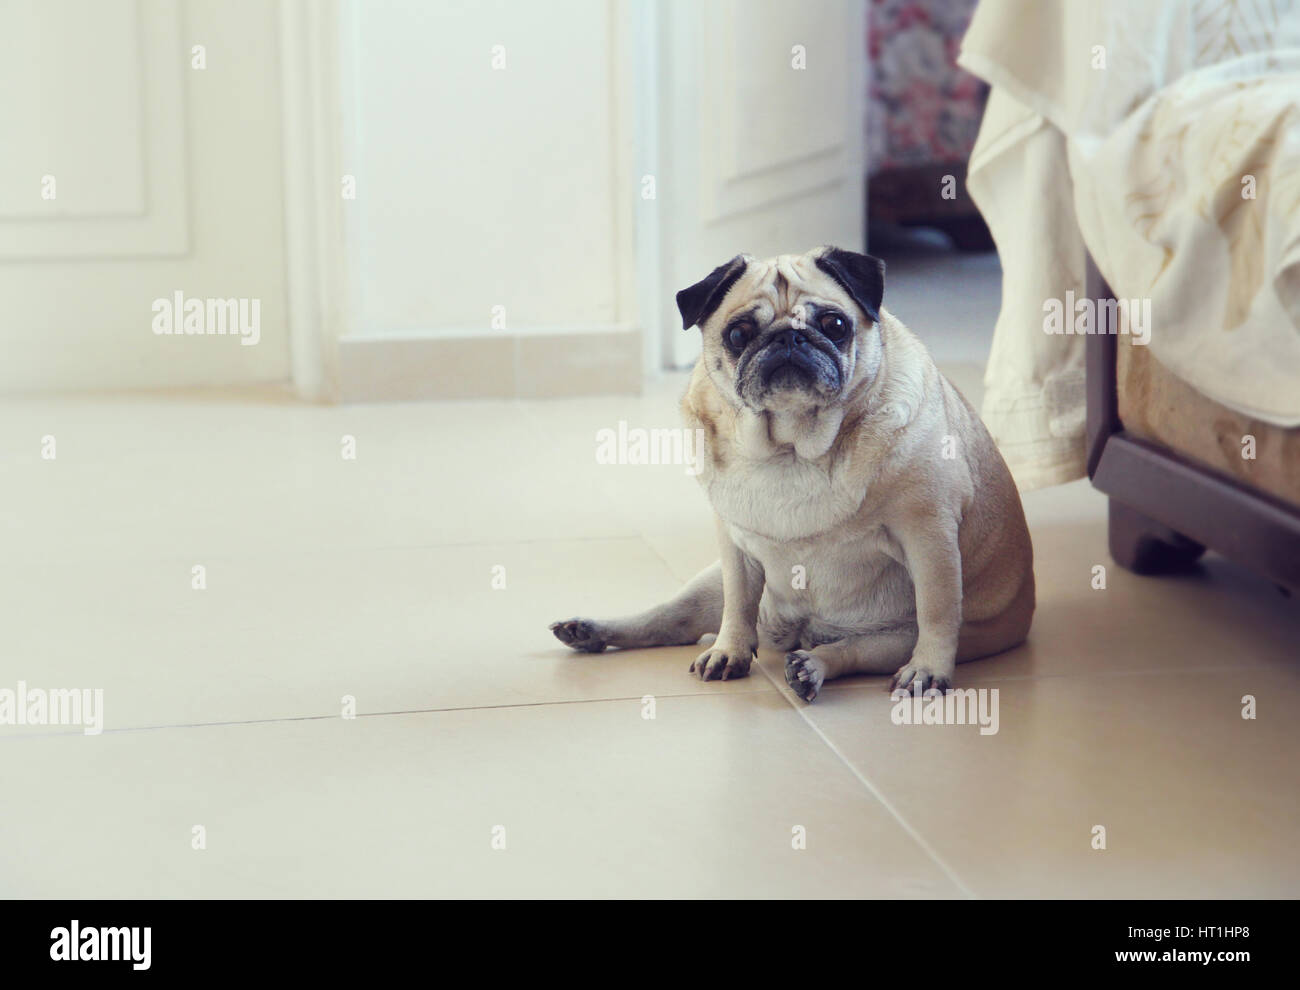 Pug dogStock Photo